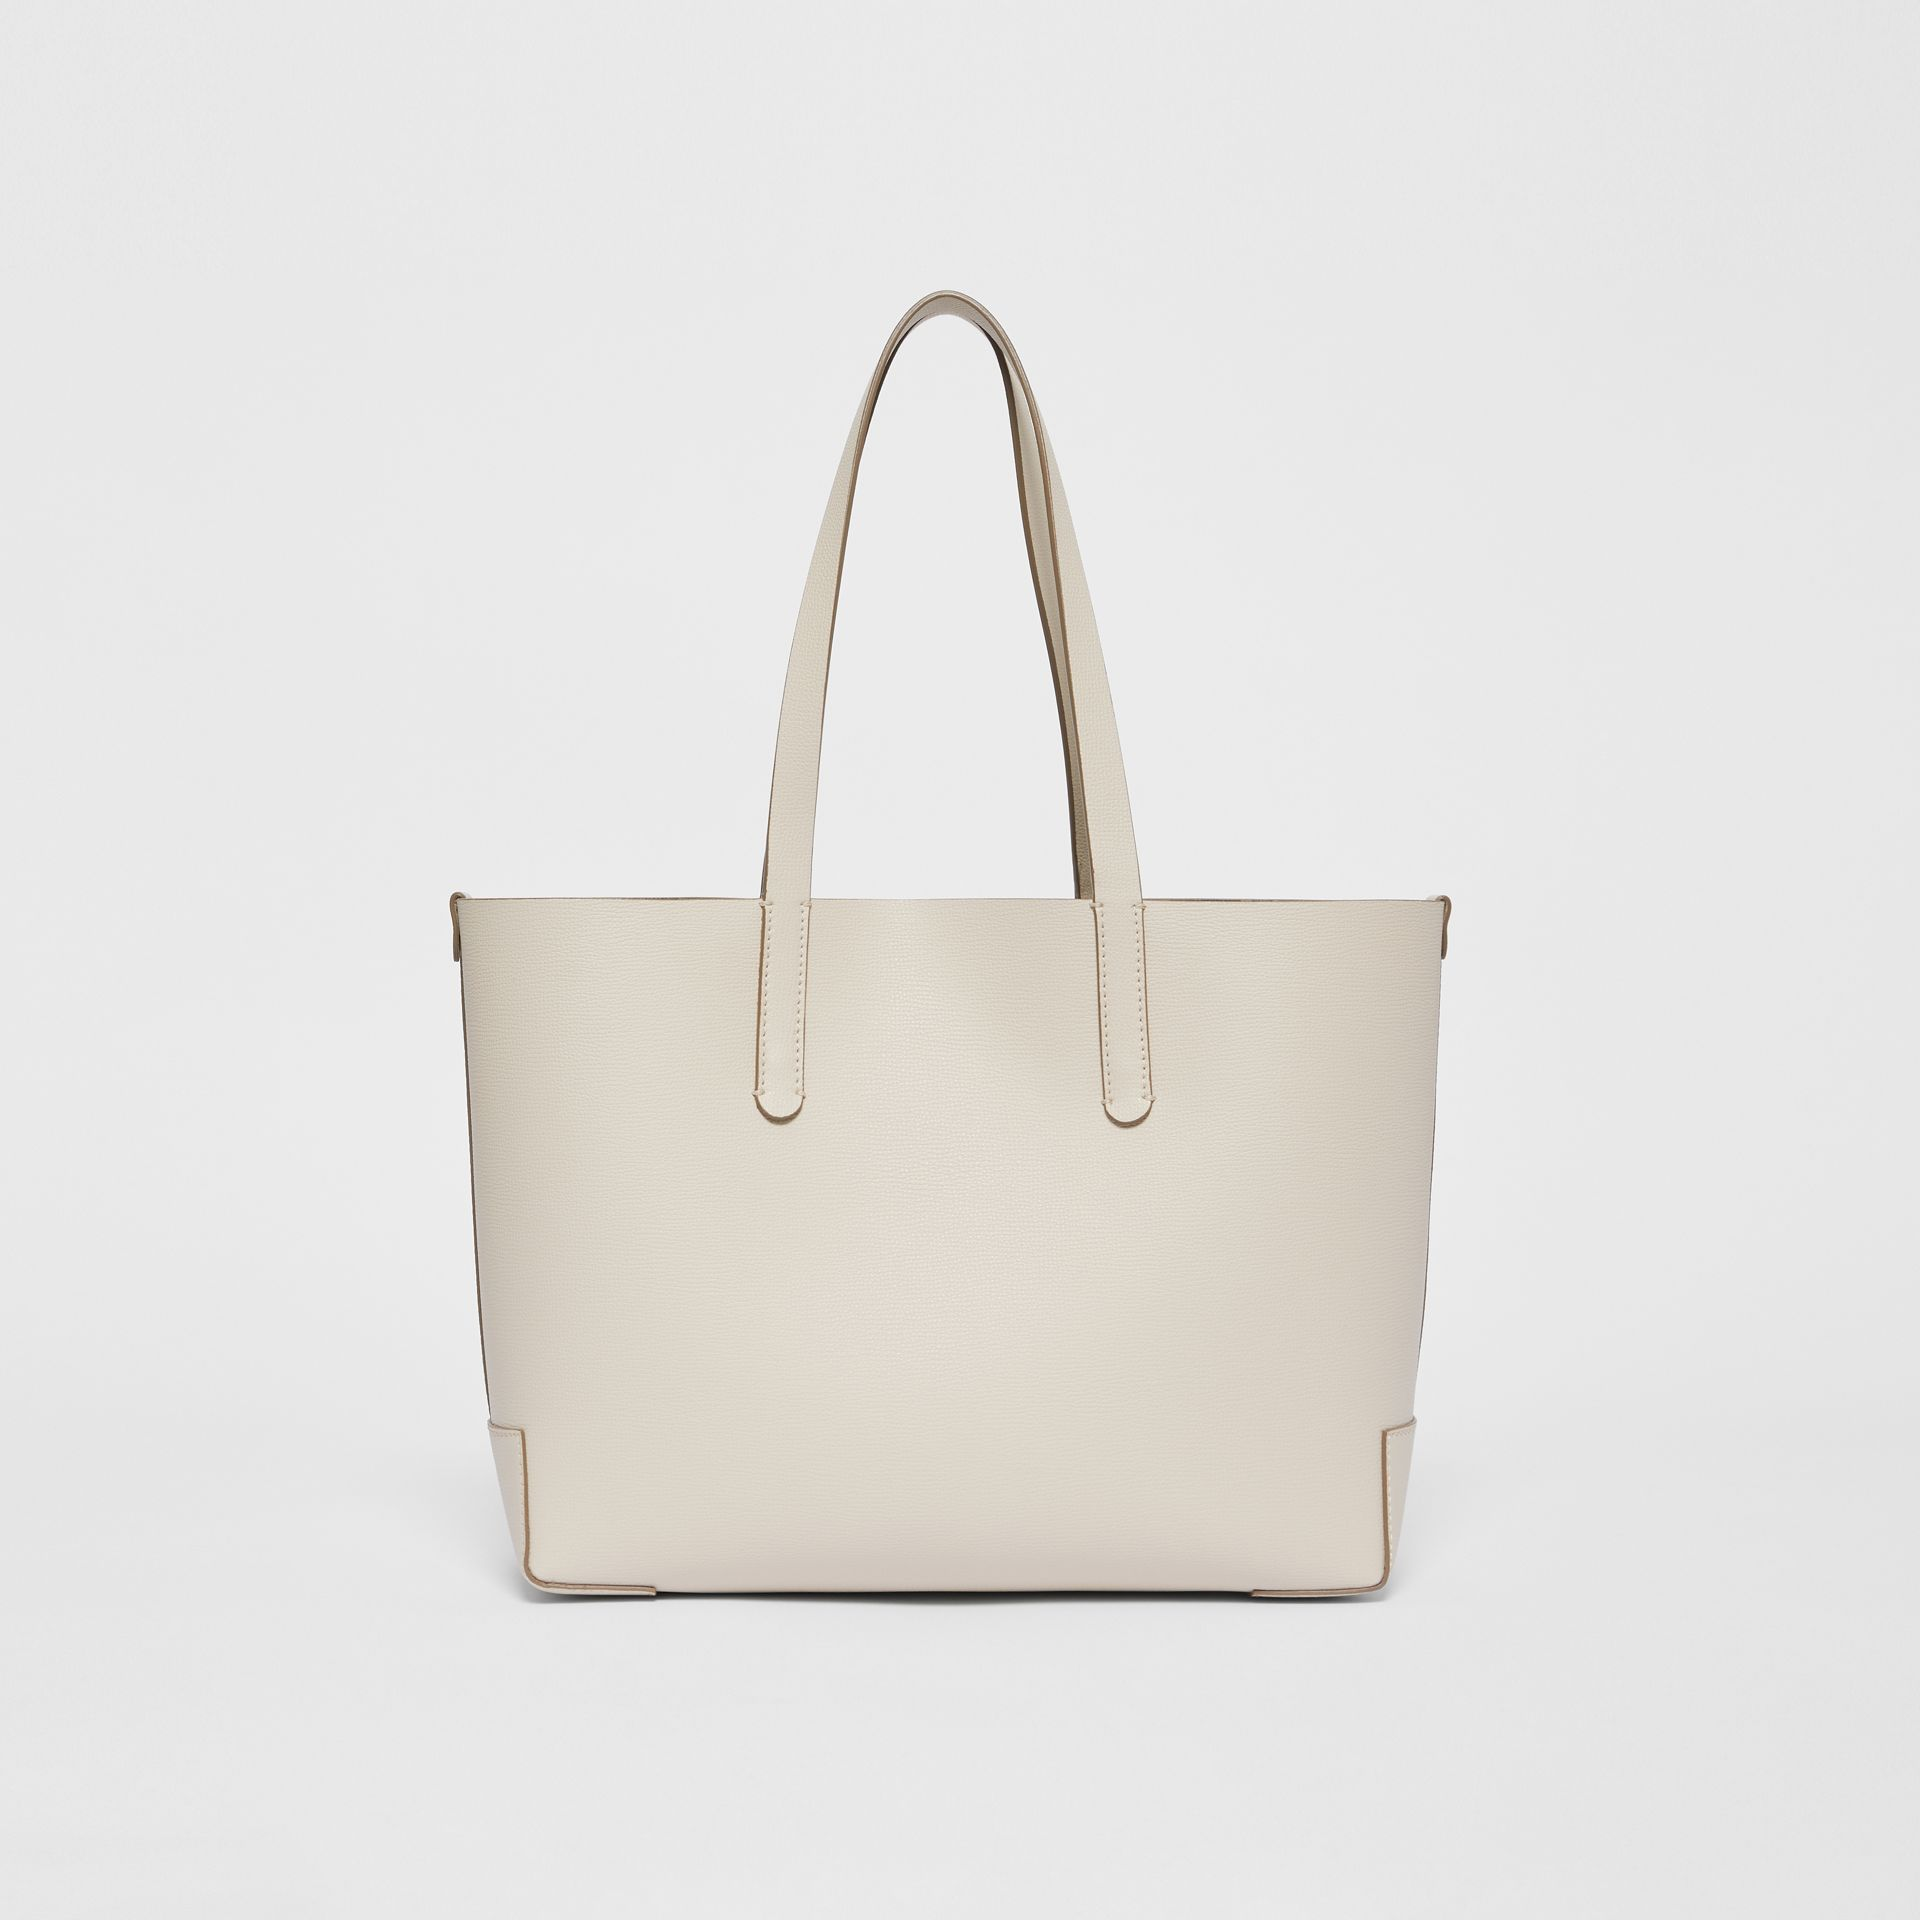 Embossed Monogram Motif Leather Tote in Limestone - Women | Burberry Australia - gallery image 7